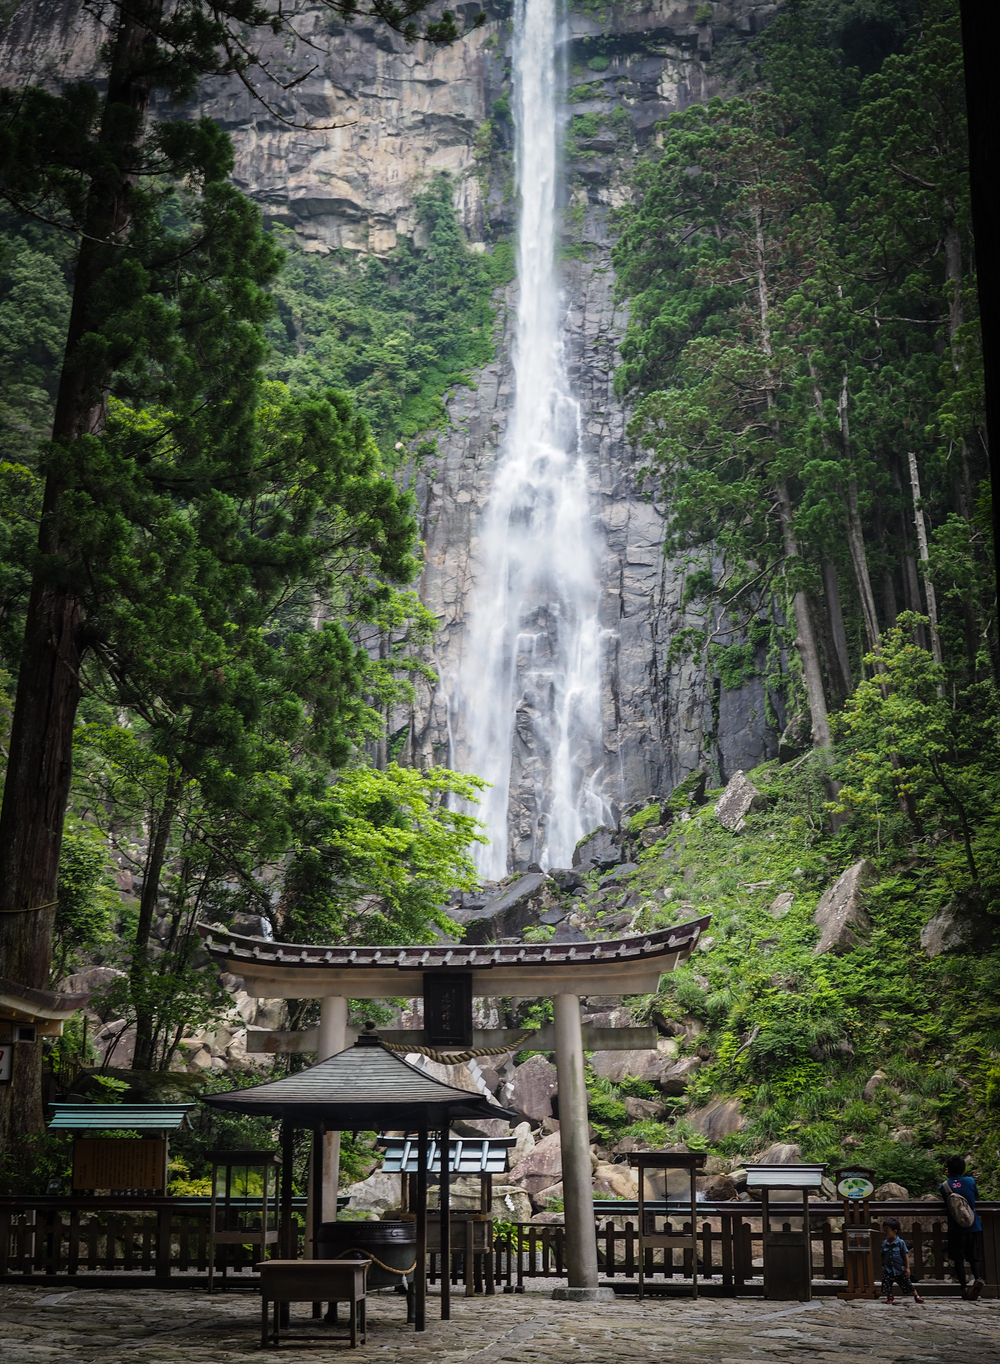 Nachi Falls, the tallest waterfall in Japan